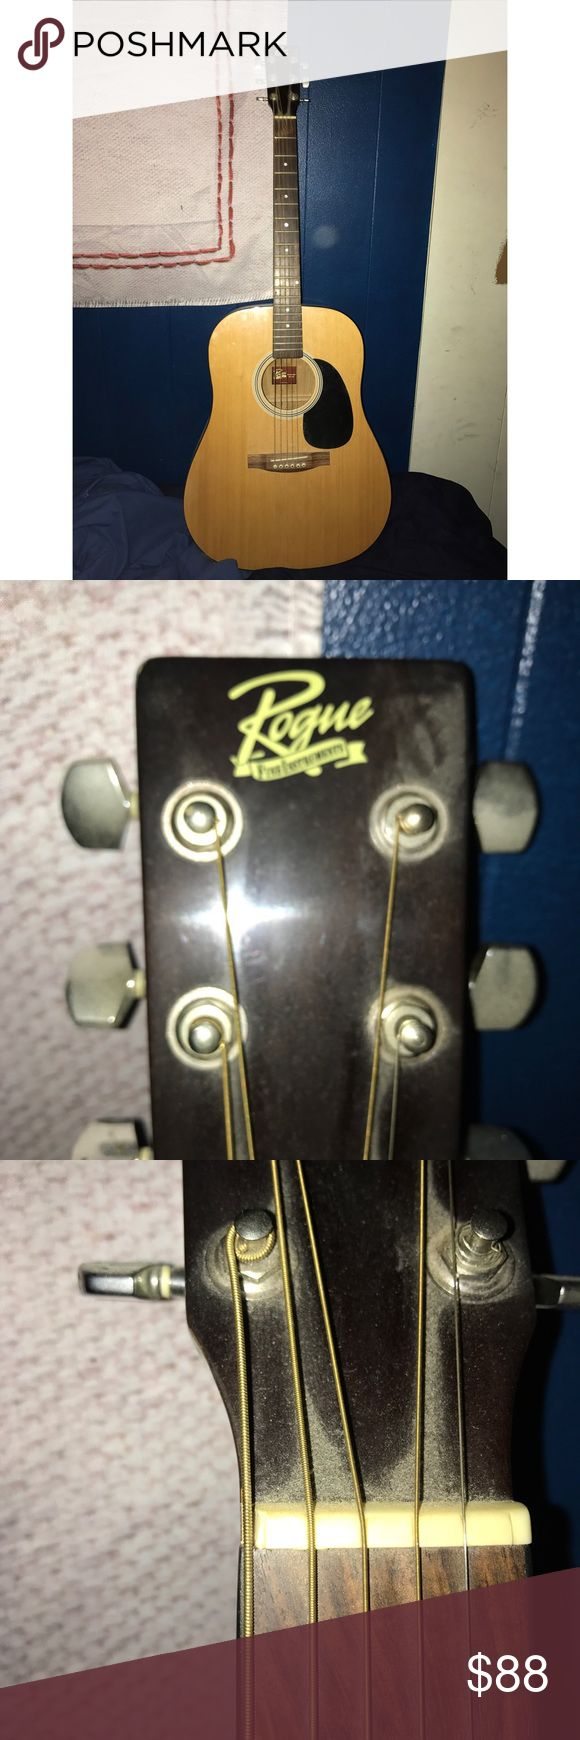 Rogue Acoustic Guitar In fairly good condition! Will need strings. Also a chip in the strip on the neck will need fixed. Other